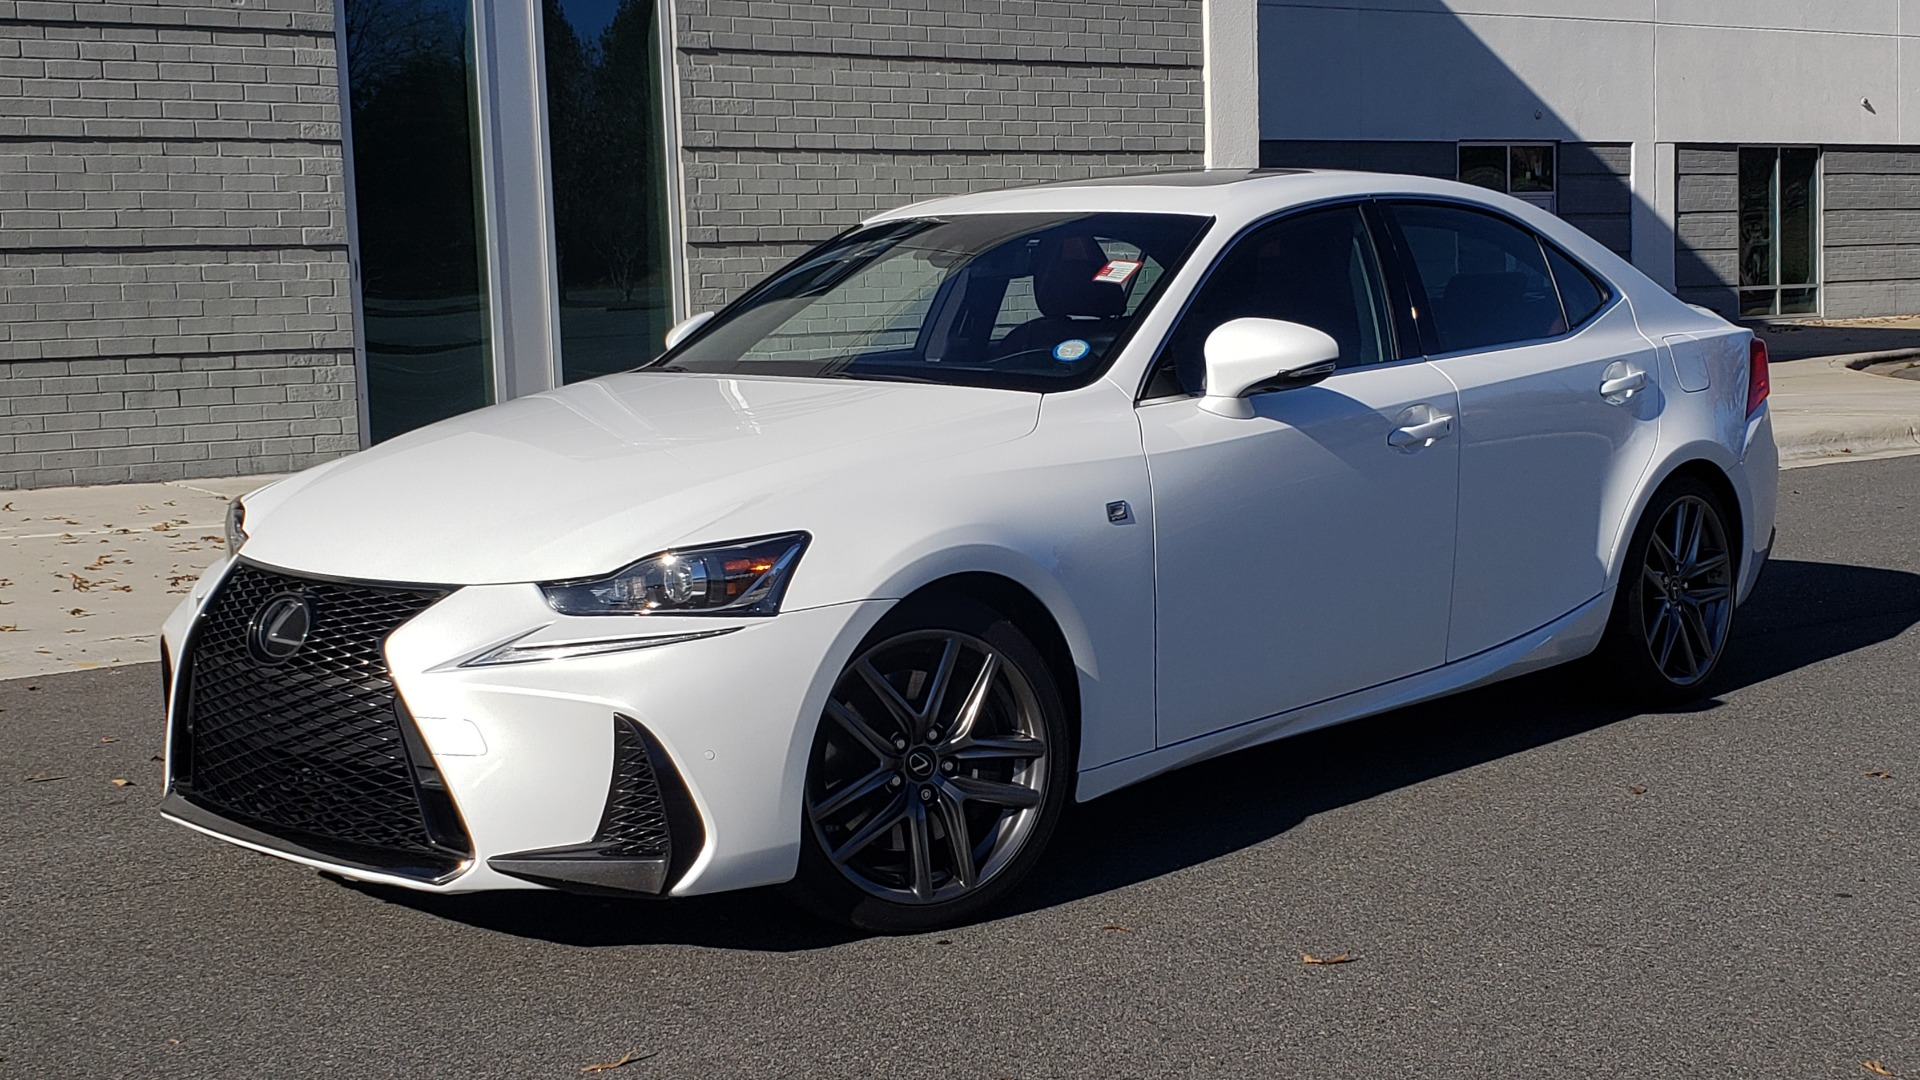 Used 2018 Lexus IS 300 F-SPORT / BSM / SUNROOF / REARVIEW / 18IN WHEELS for sale $24,995 at Formula Imports in Charlotte NC 28227 1